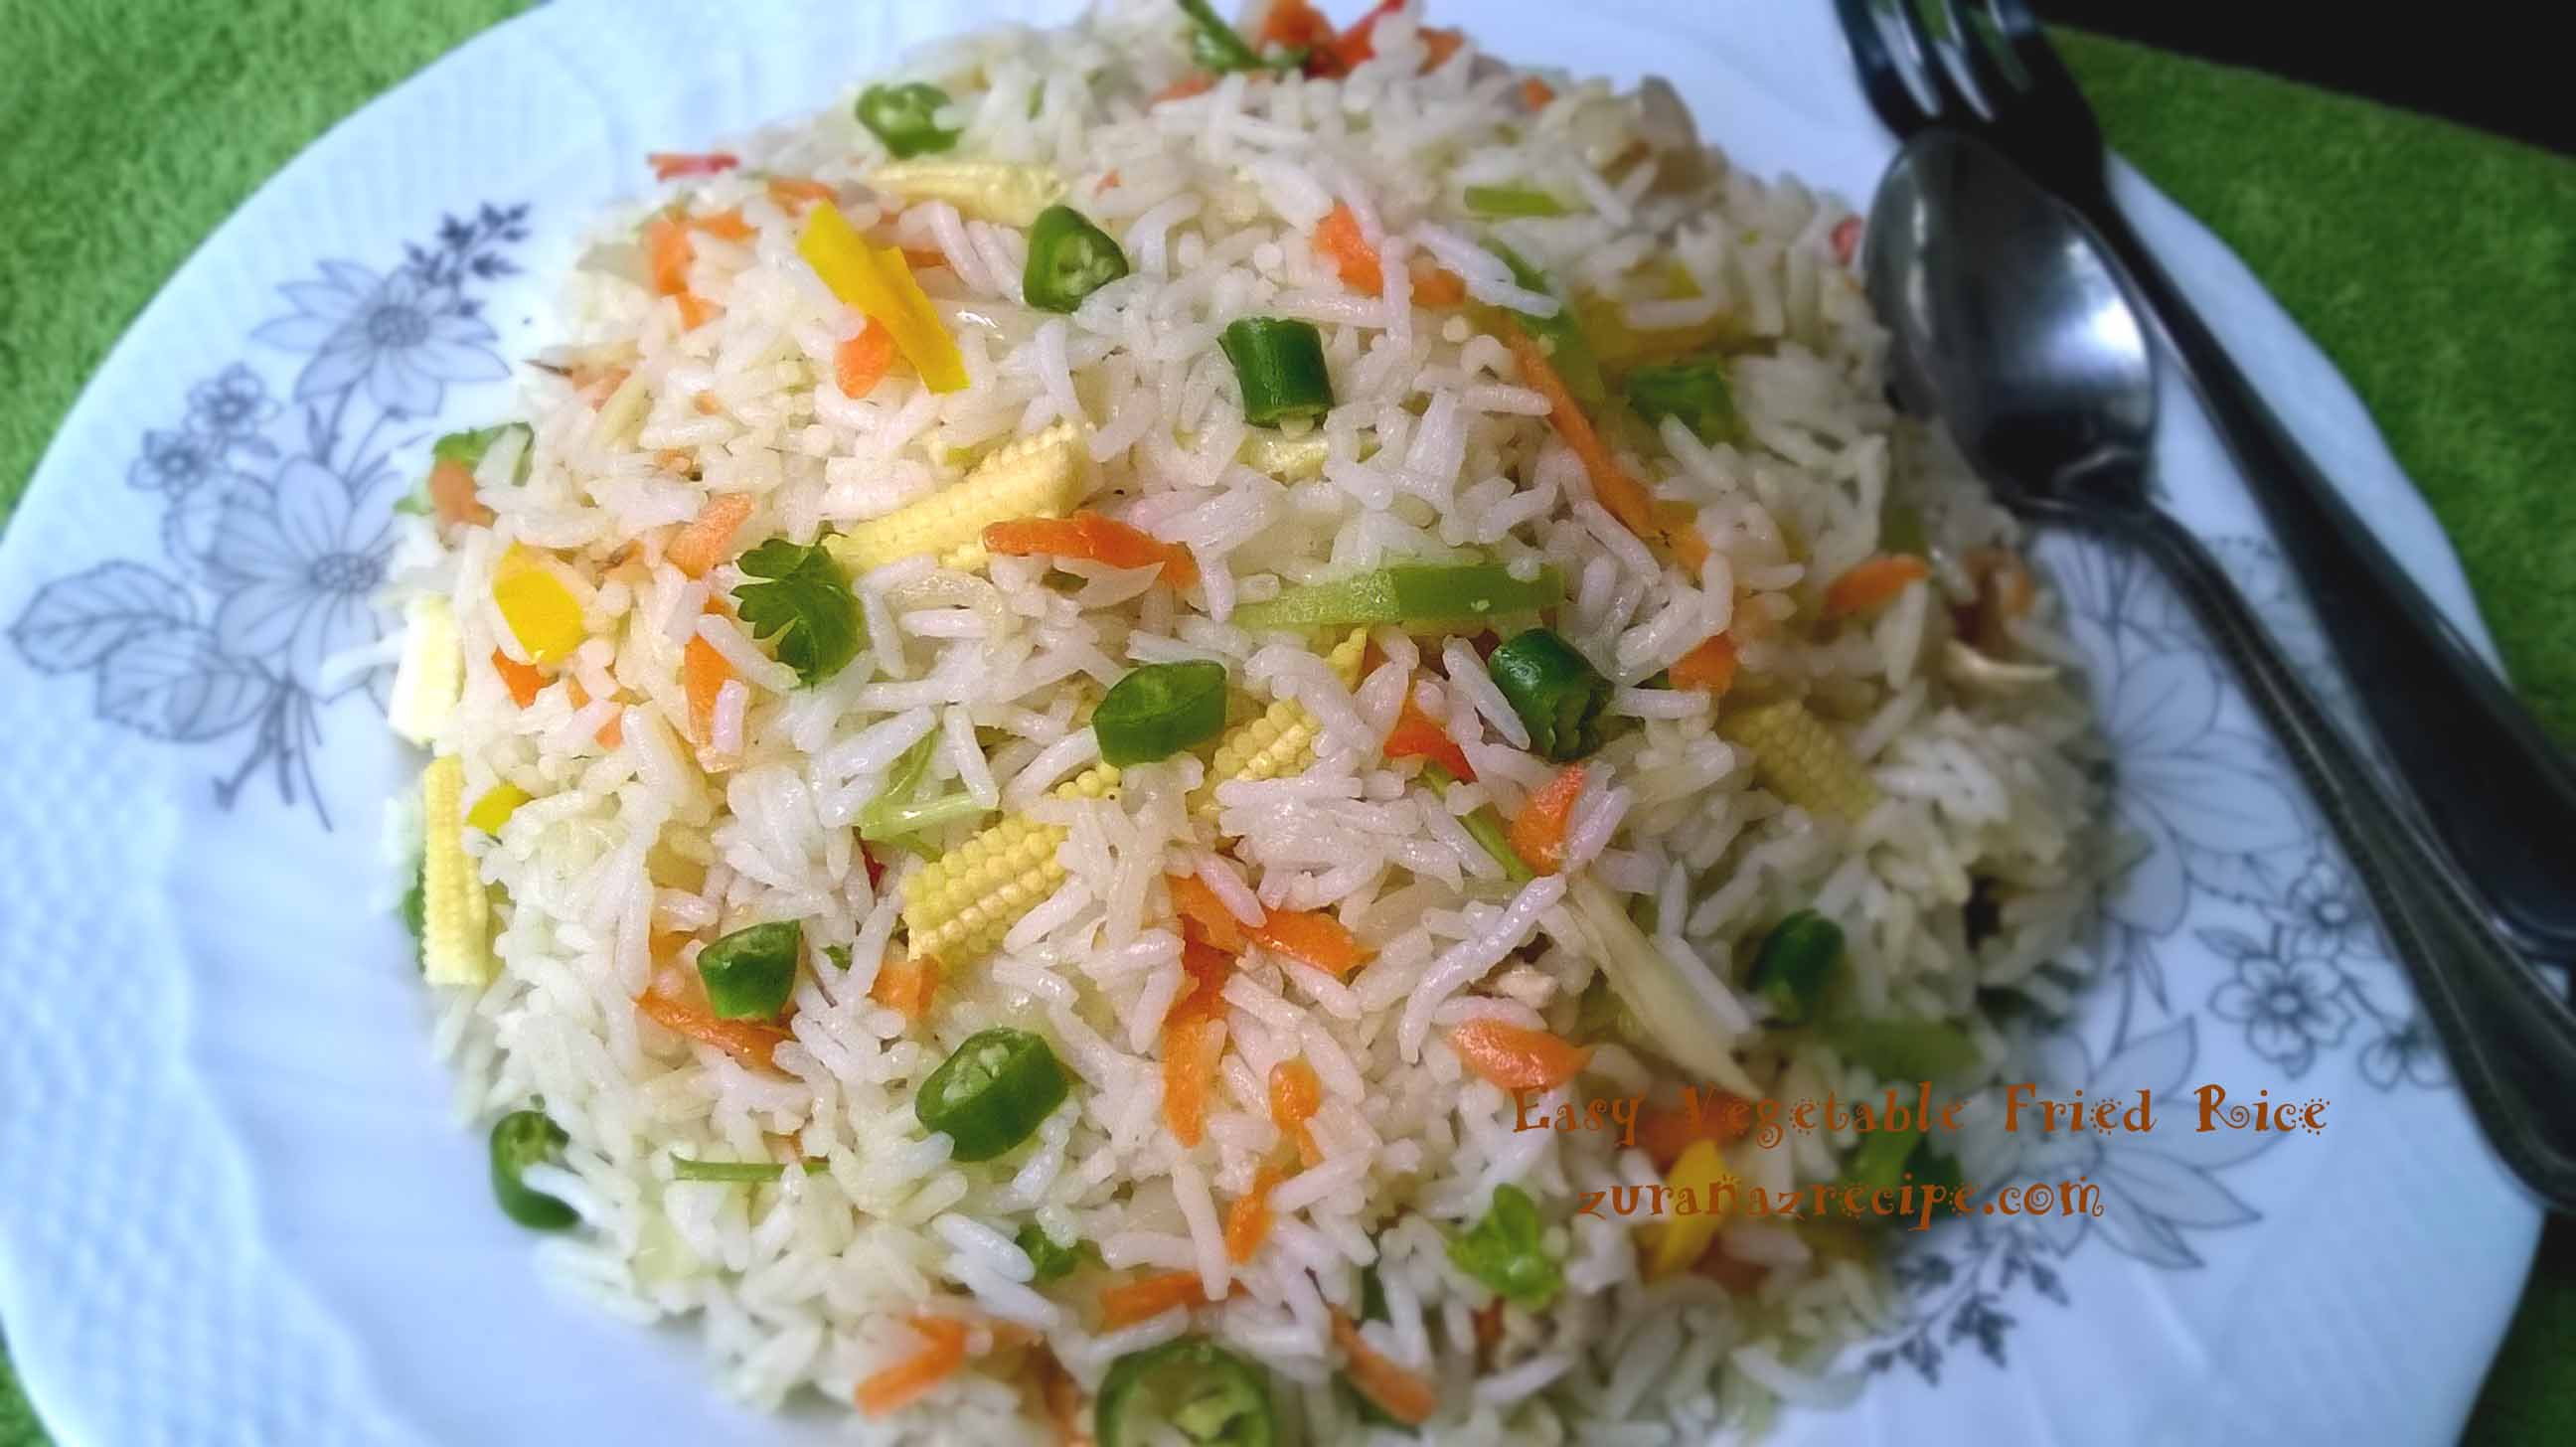 Easy vegetable fried rice bangla bangladeshi bengali food recipes easy vegetable fried rice forumfinder Gallery